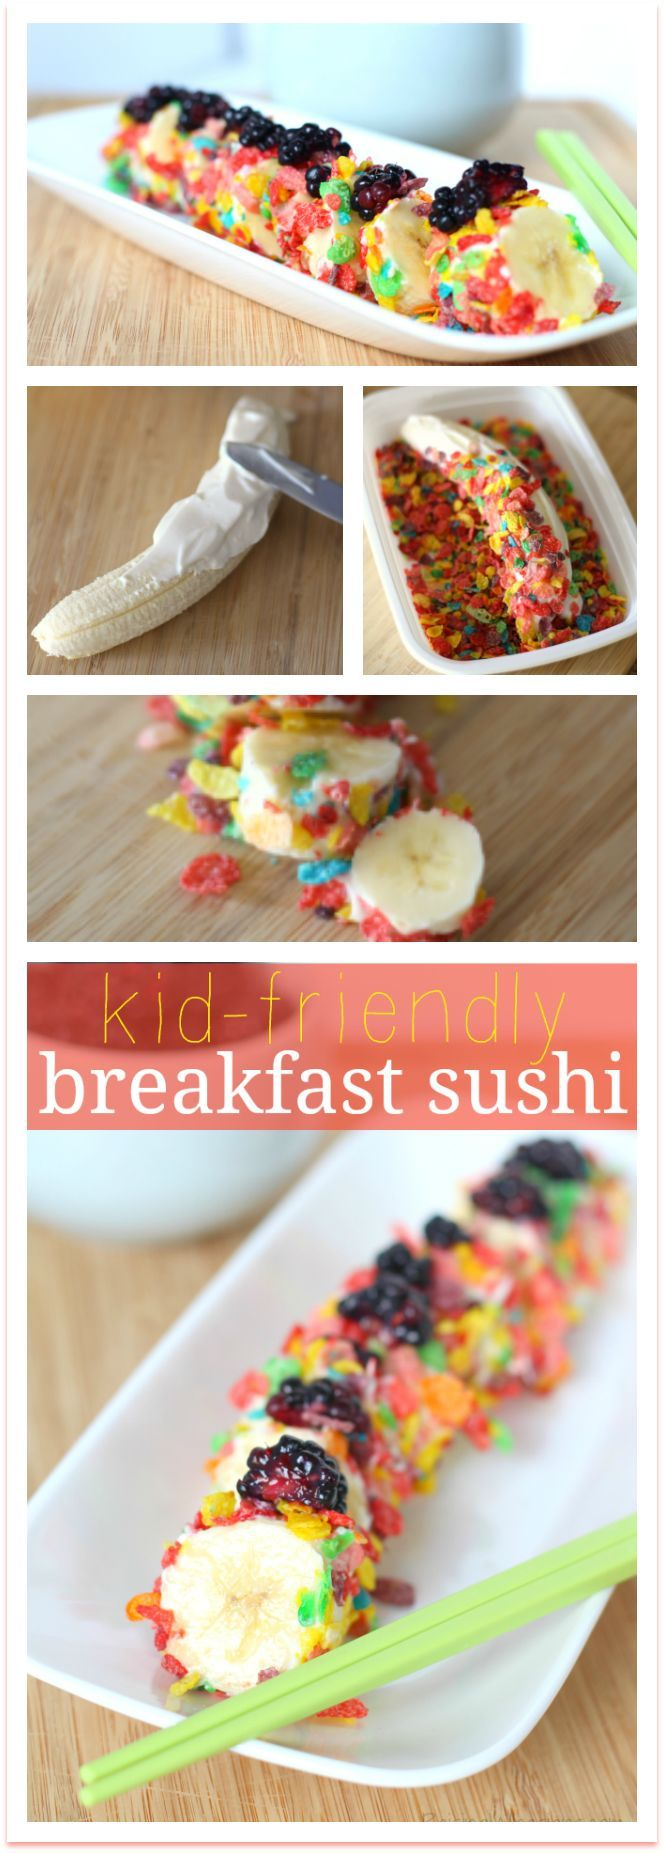 Kids Breakfast Sushi Recipe | Easy & FUN breakfast idea for kids - a perfect kid-friendly back-to-school breakfast too!